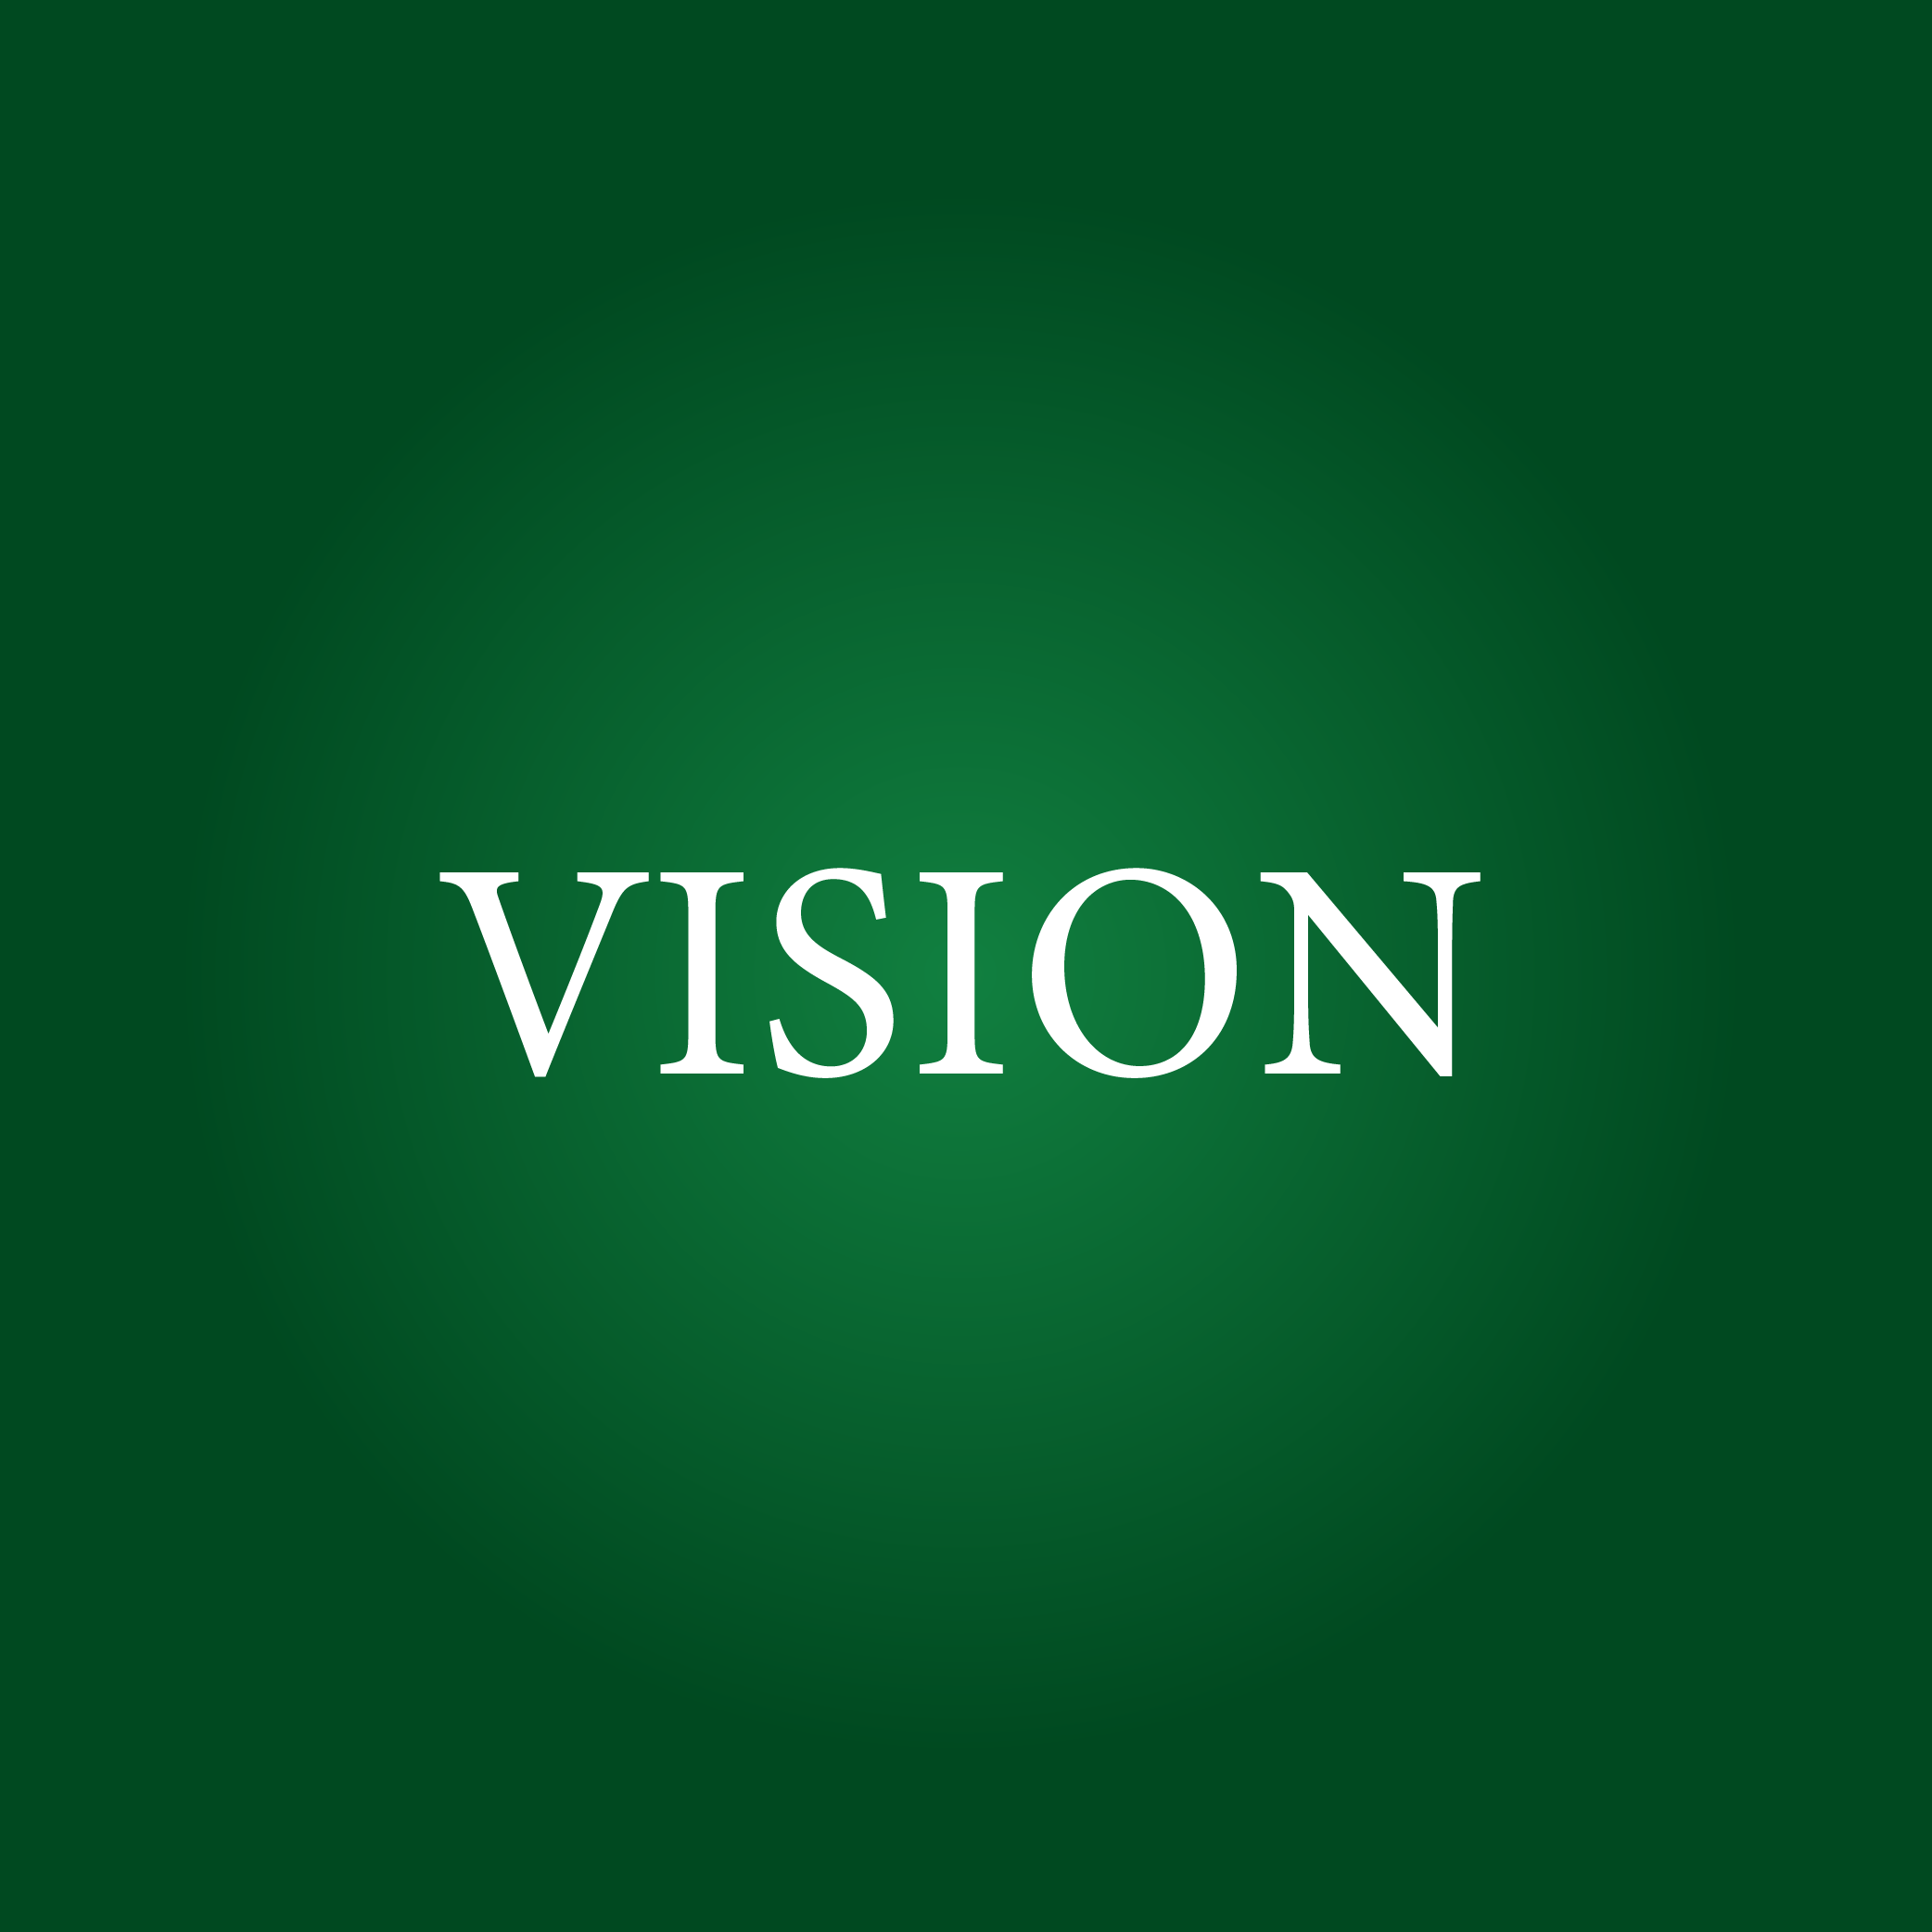 JT ICONS_VISION 1